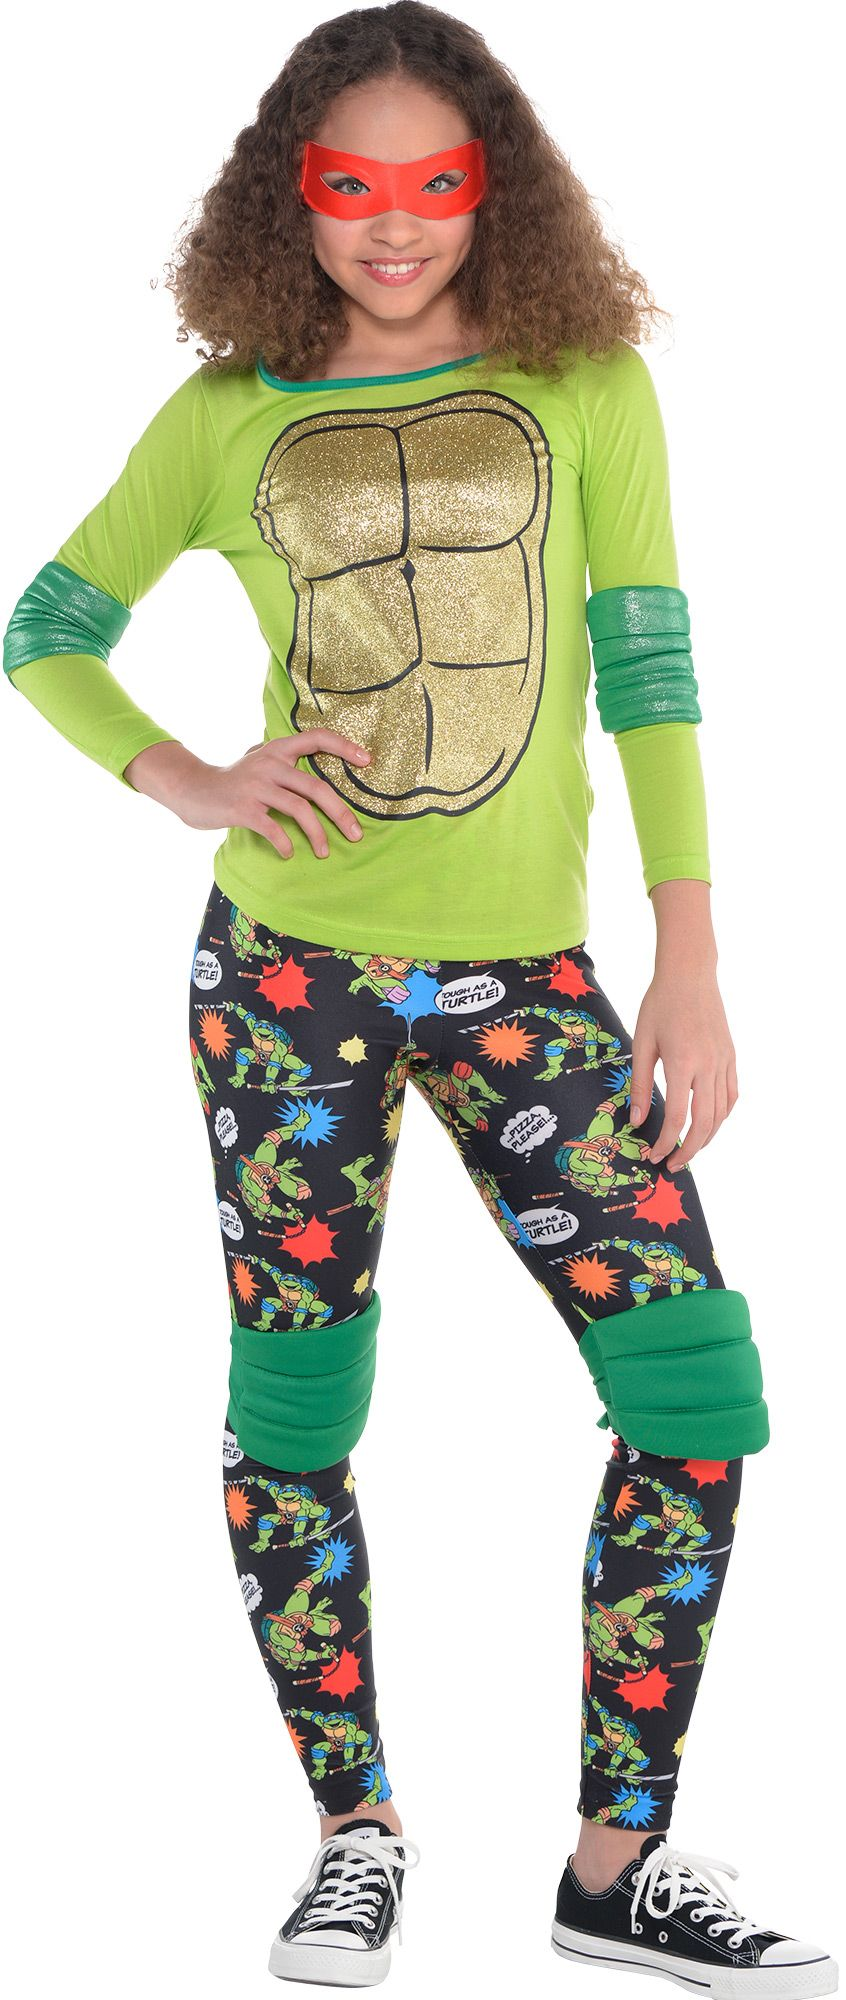 Create Your Own Look - Tween Sporty Teenage Mutant Ninja Turtles